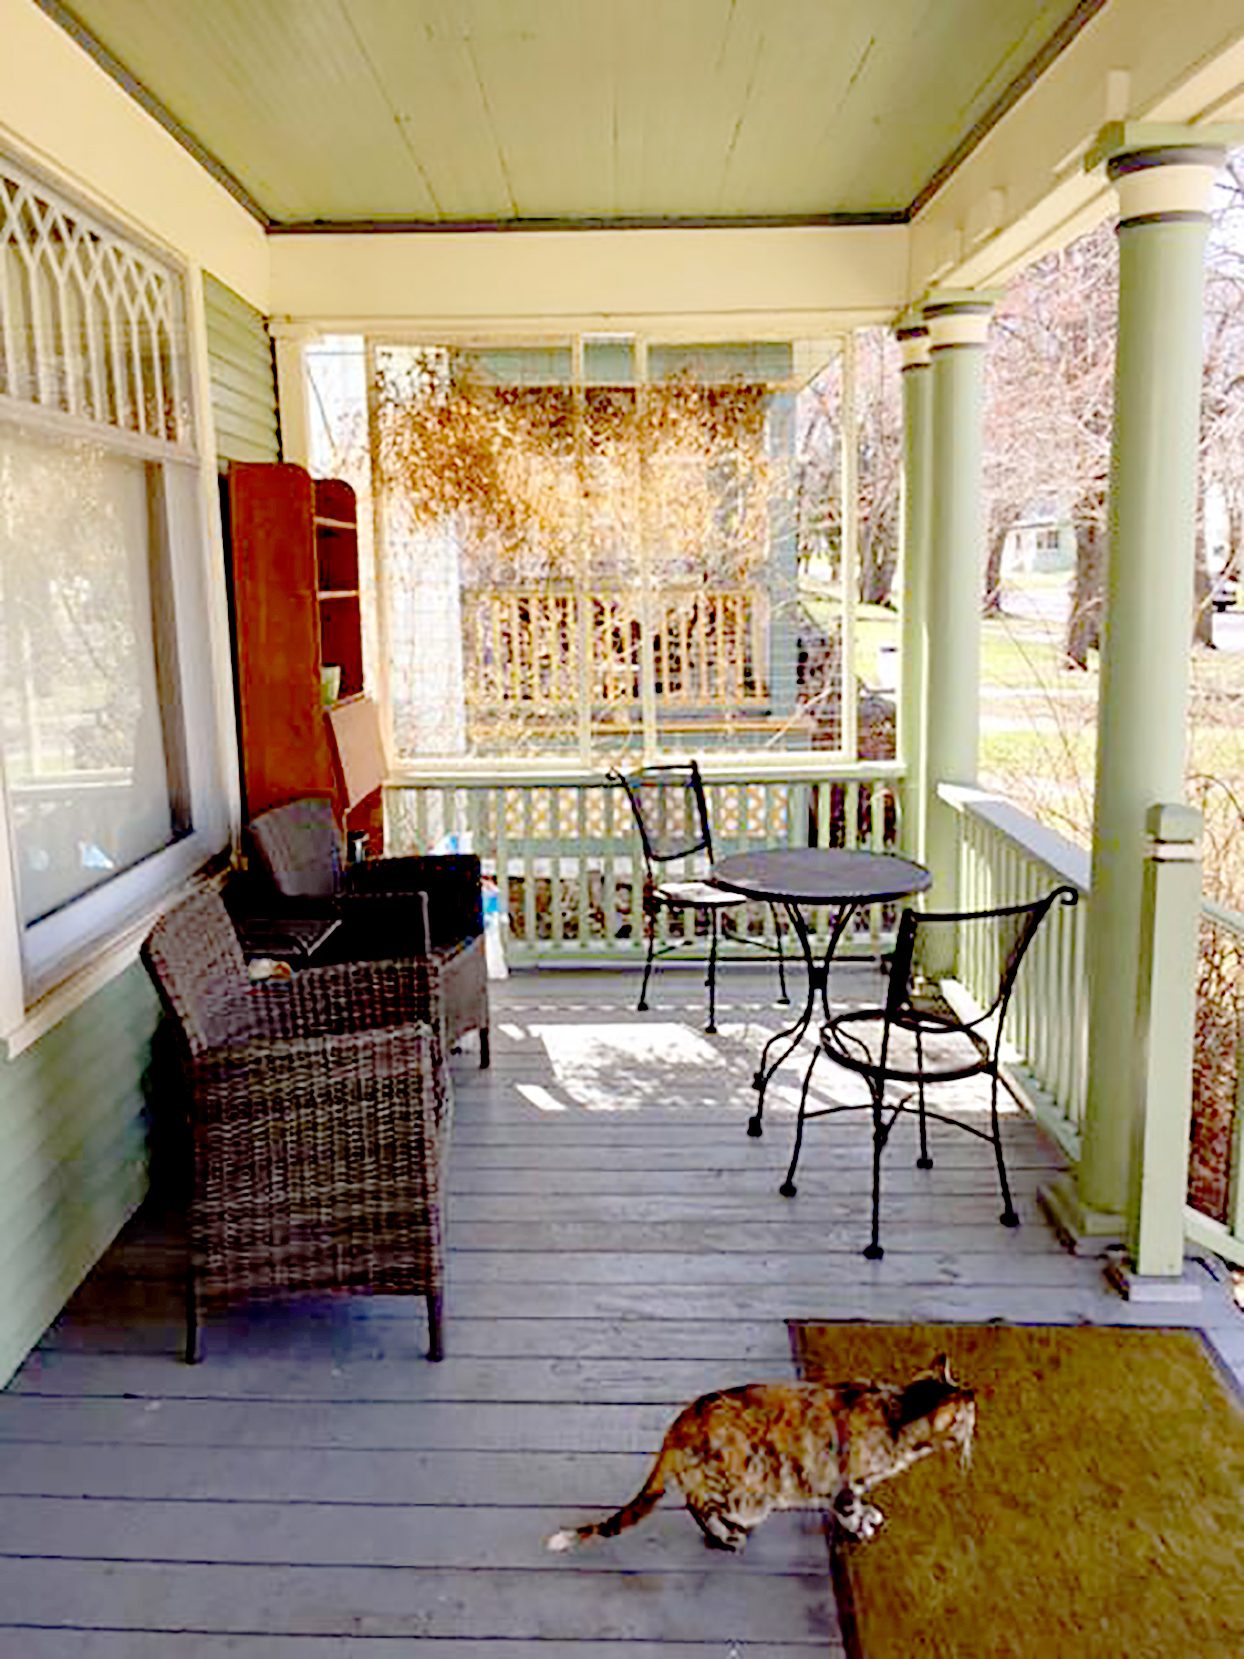 Porch with wicker chairs and small table and chairs